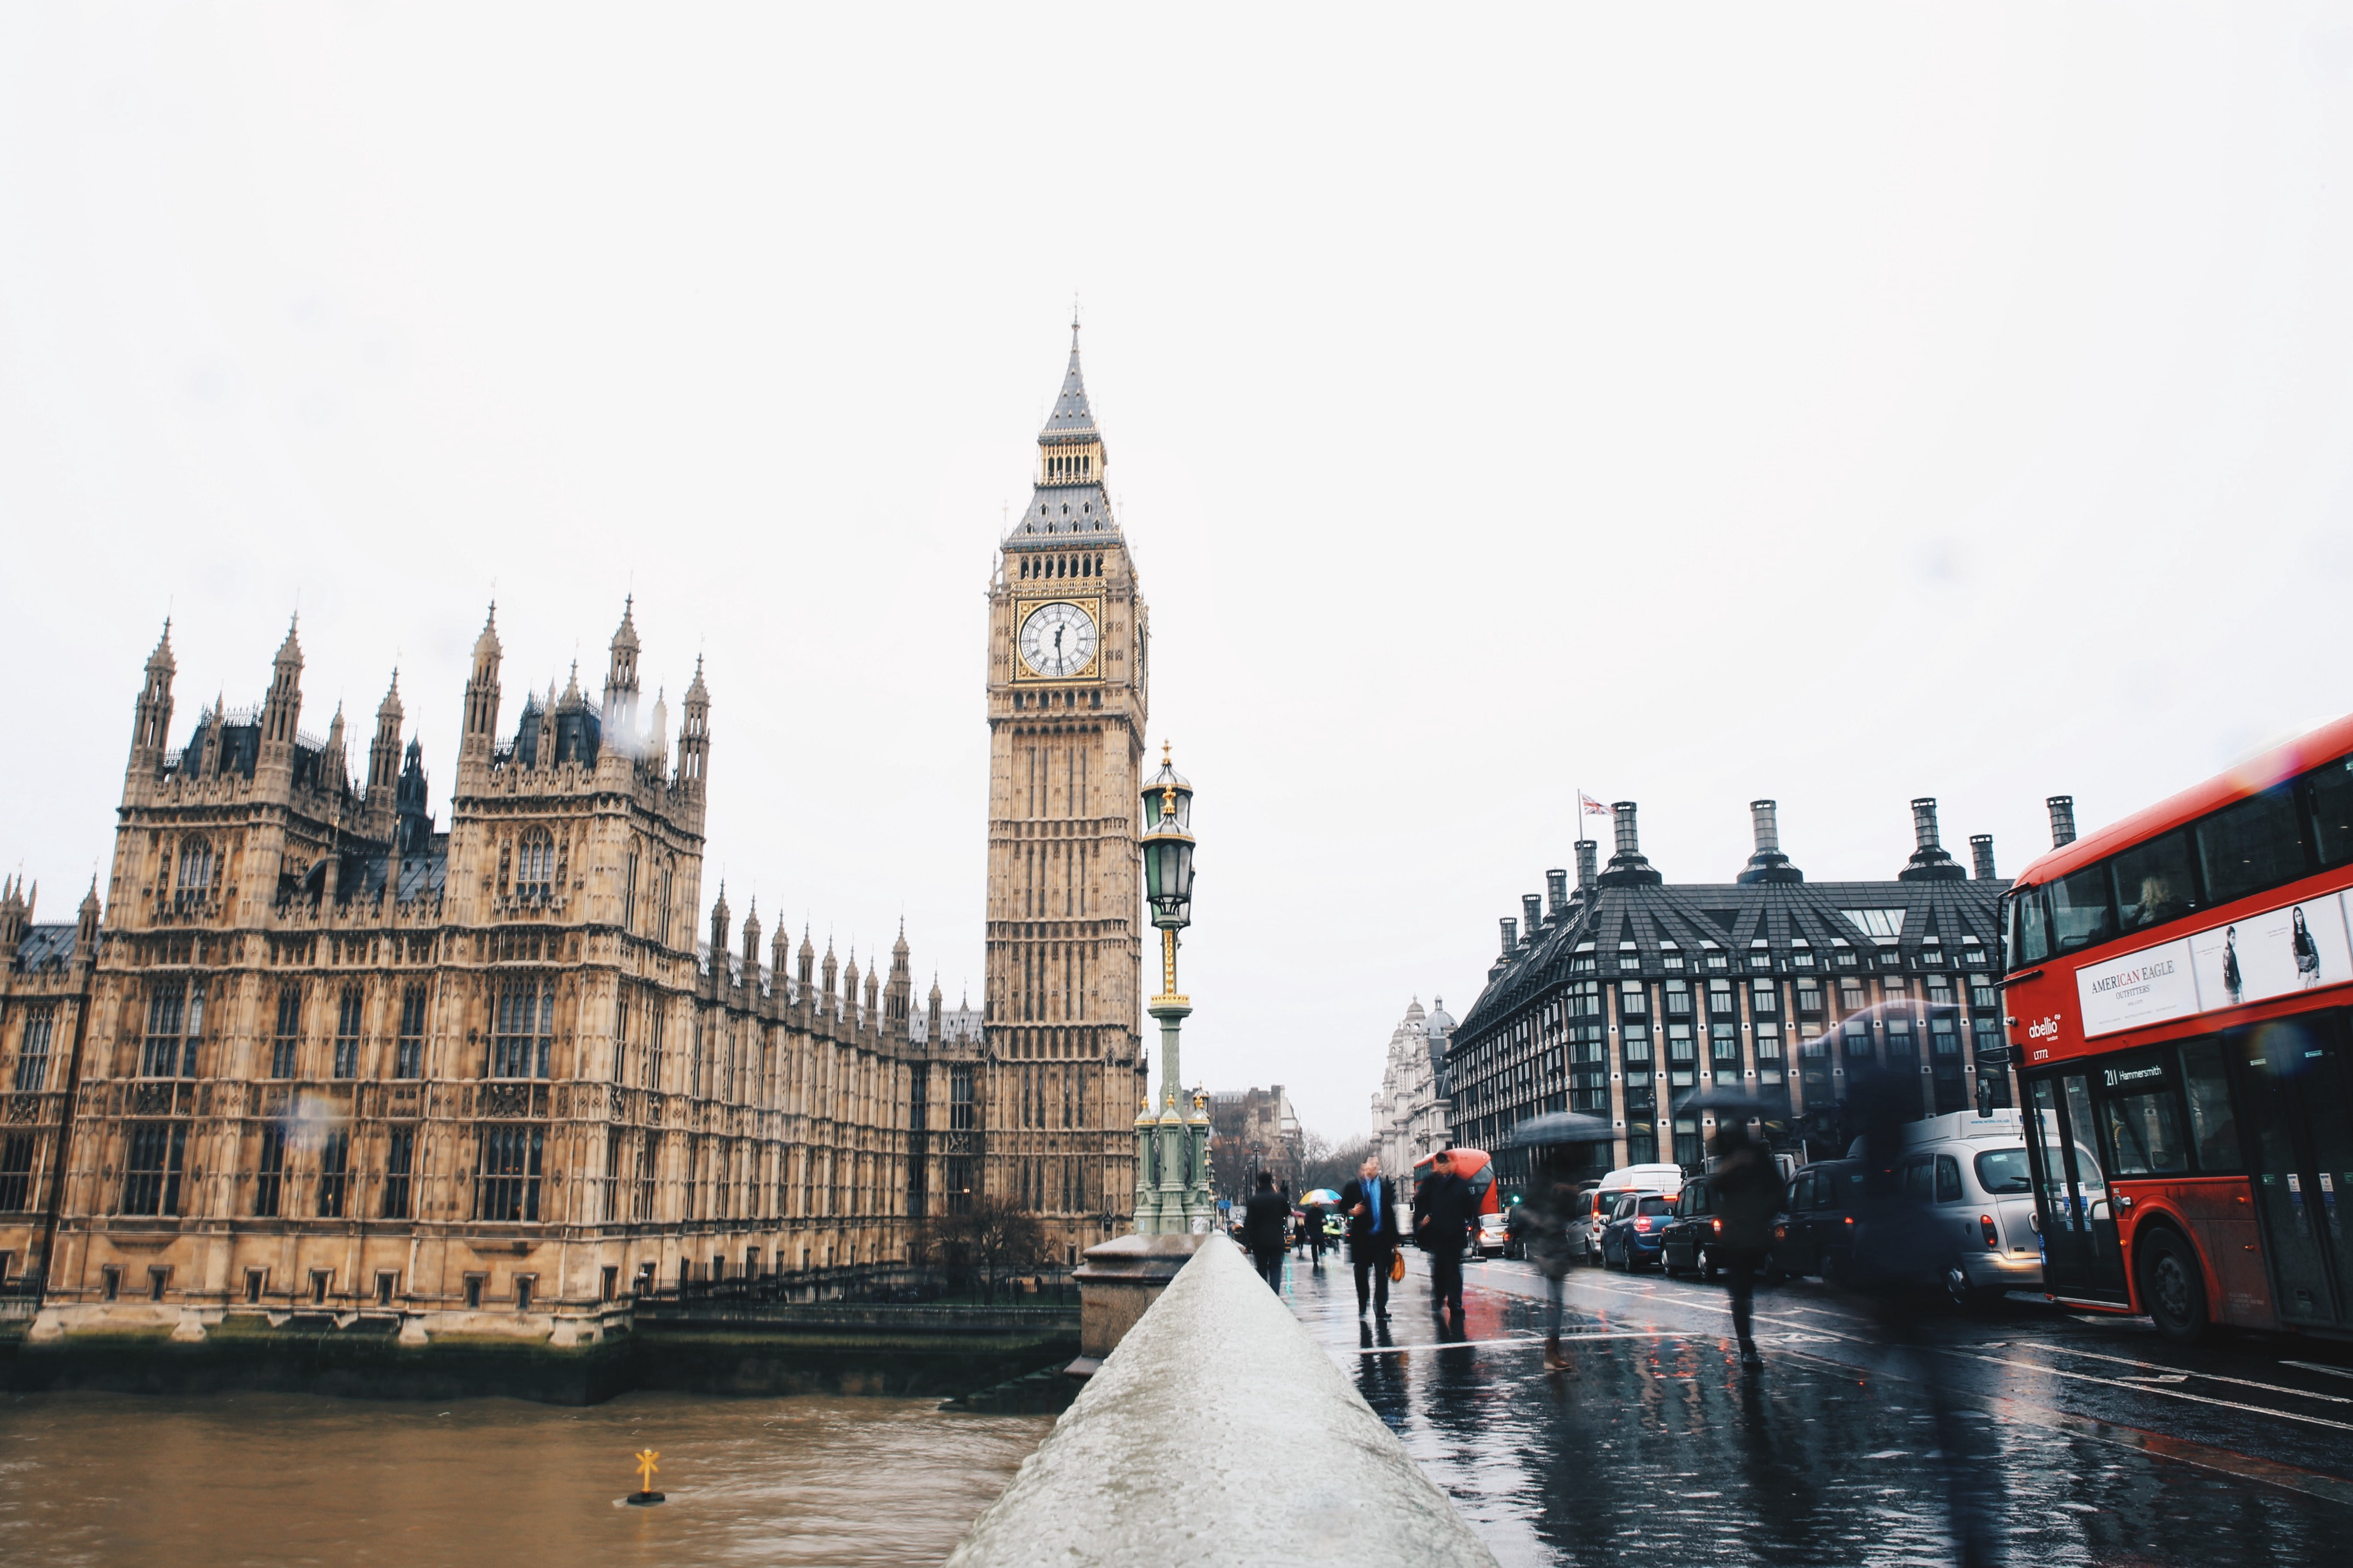 The Houses of Parliament, a so-called dead parliament